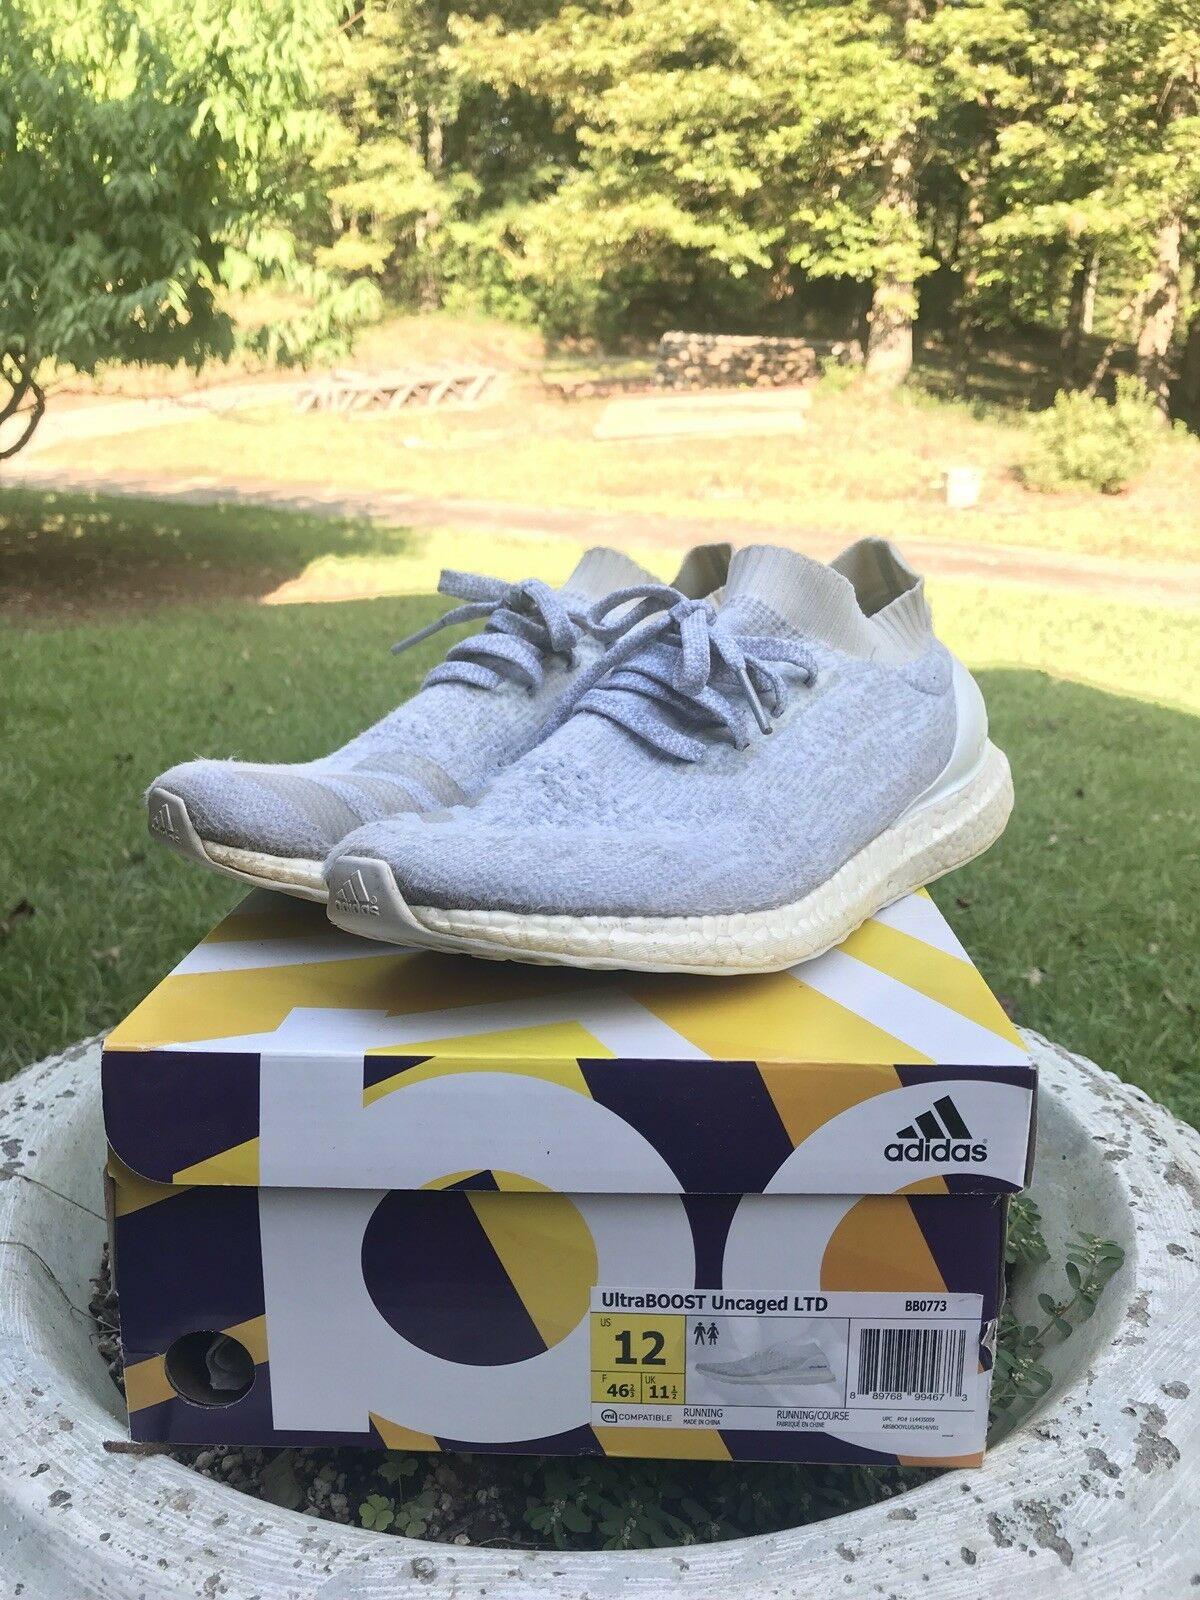 Adidas Ultra Boost Uncaged Size 12